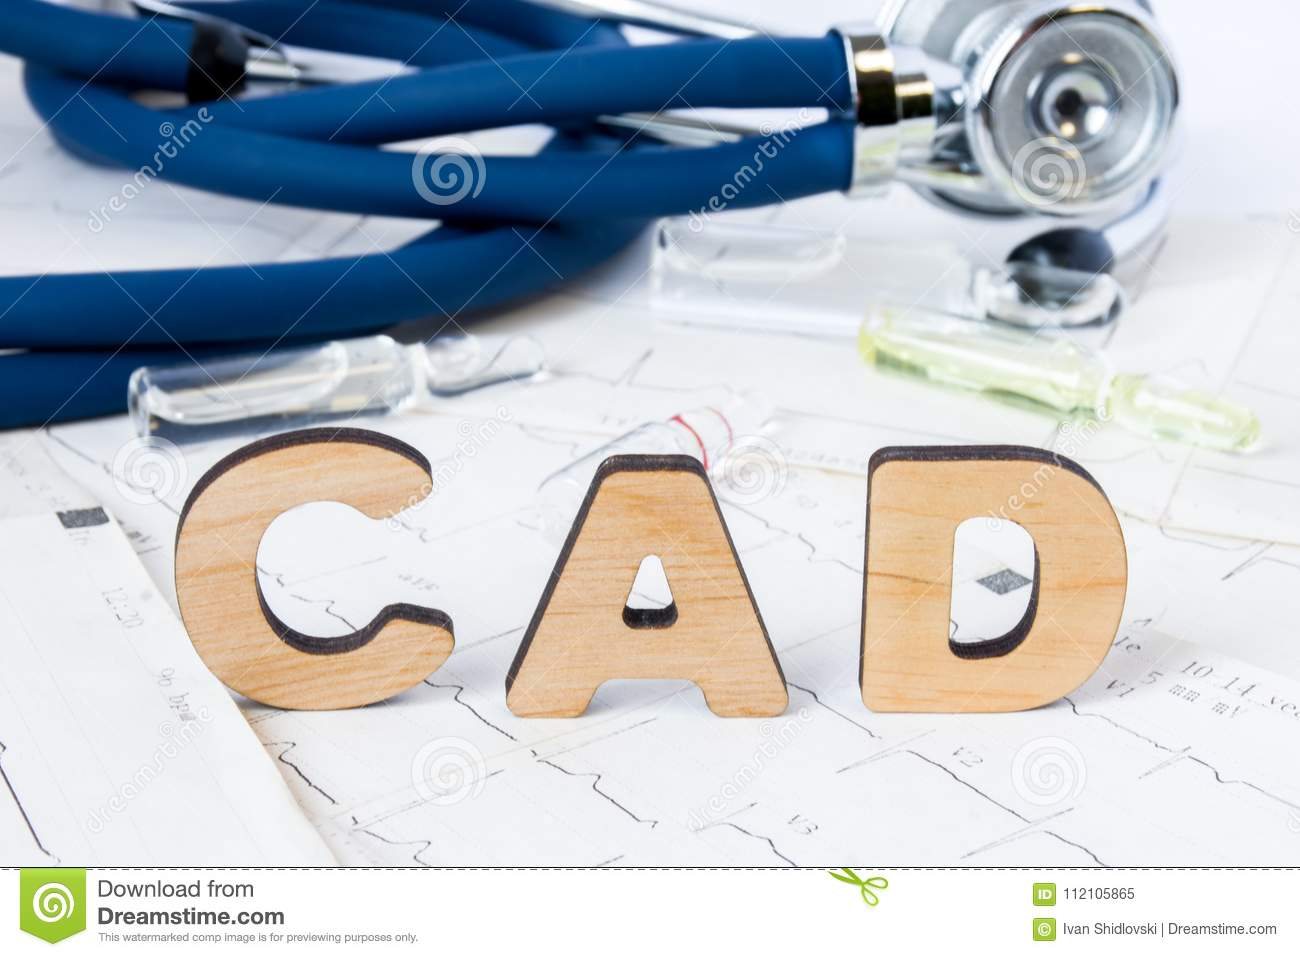 CAD Acronym or abbreviation to medical concept or diagnosis of coronary artery disease - common type of heart disease. Word CAD le